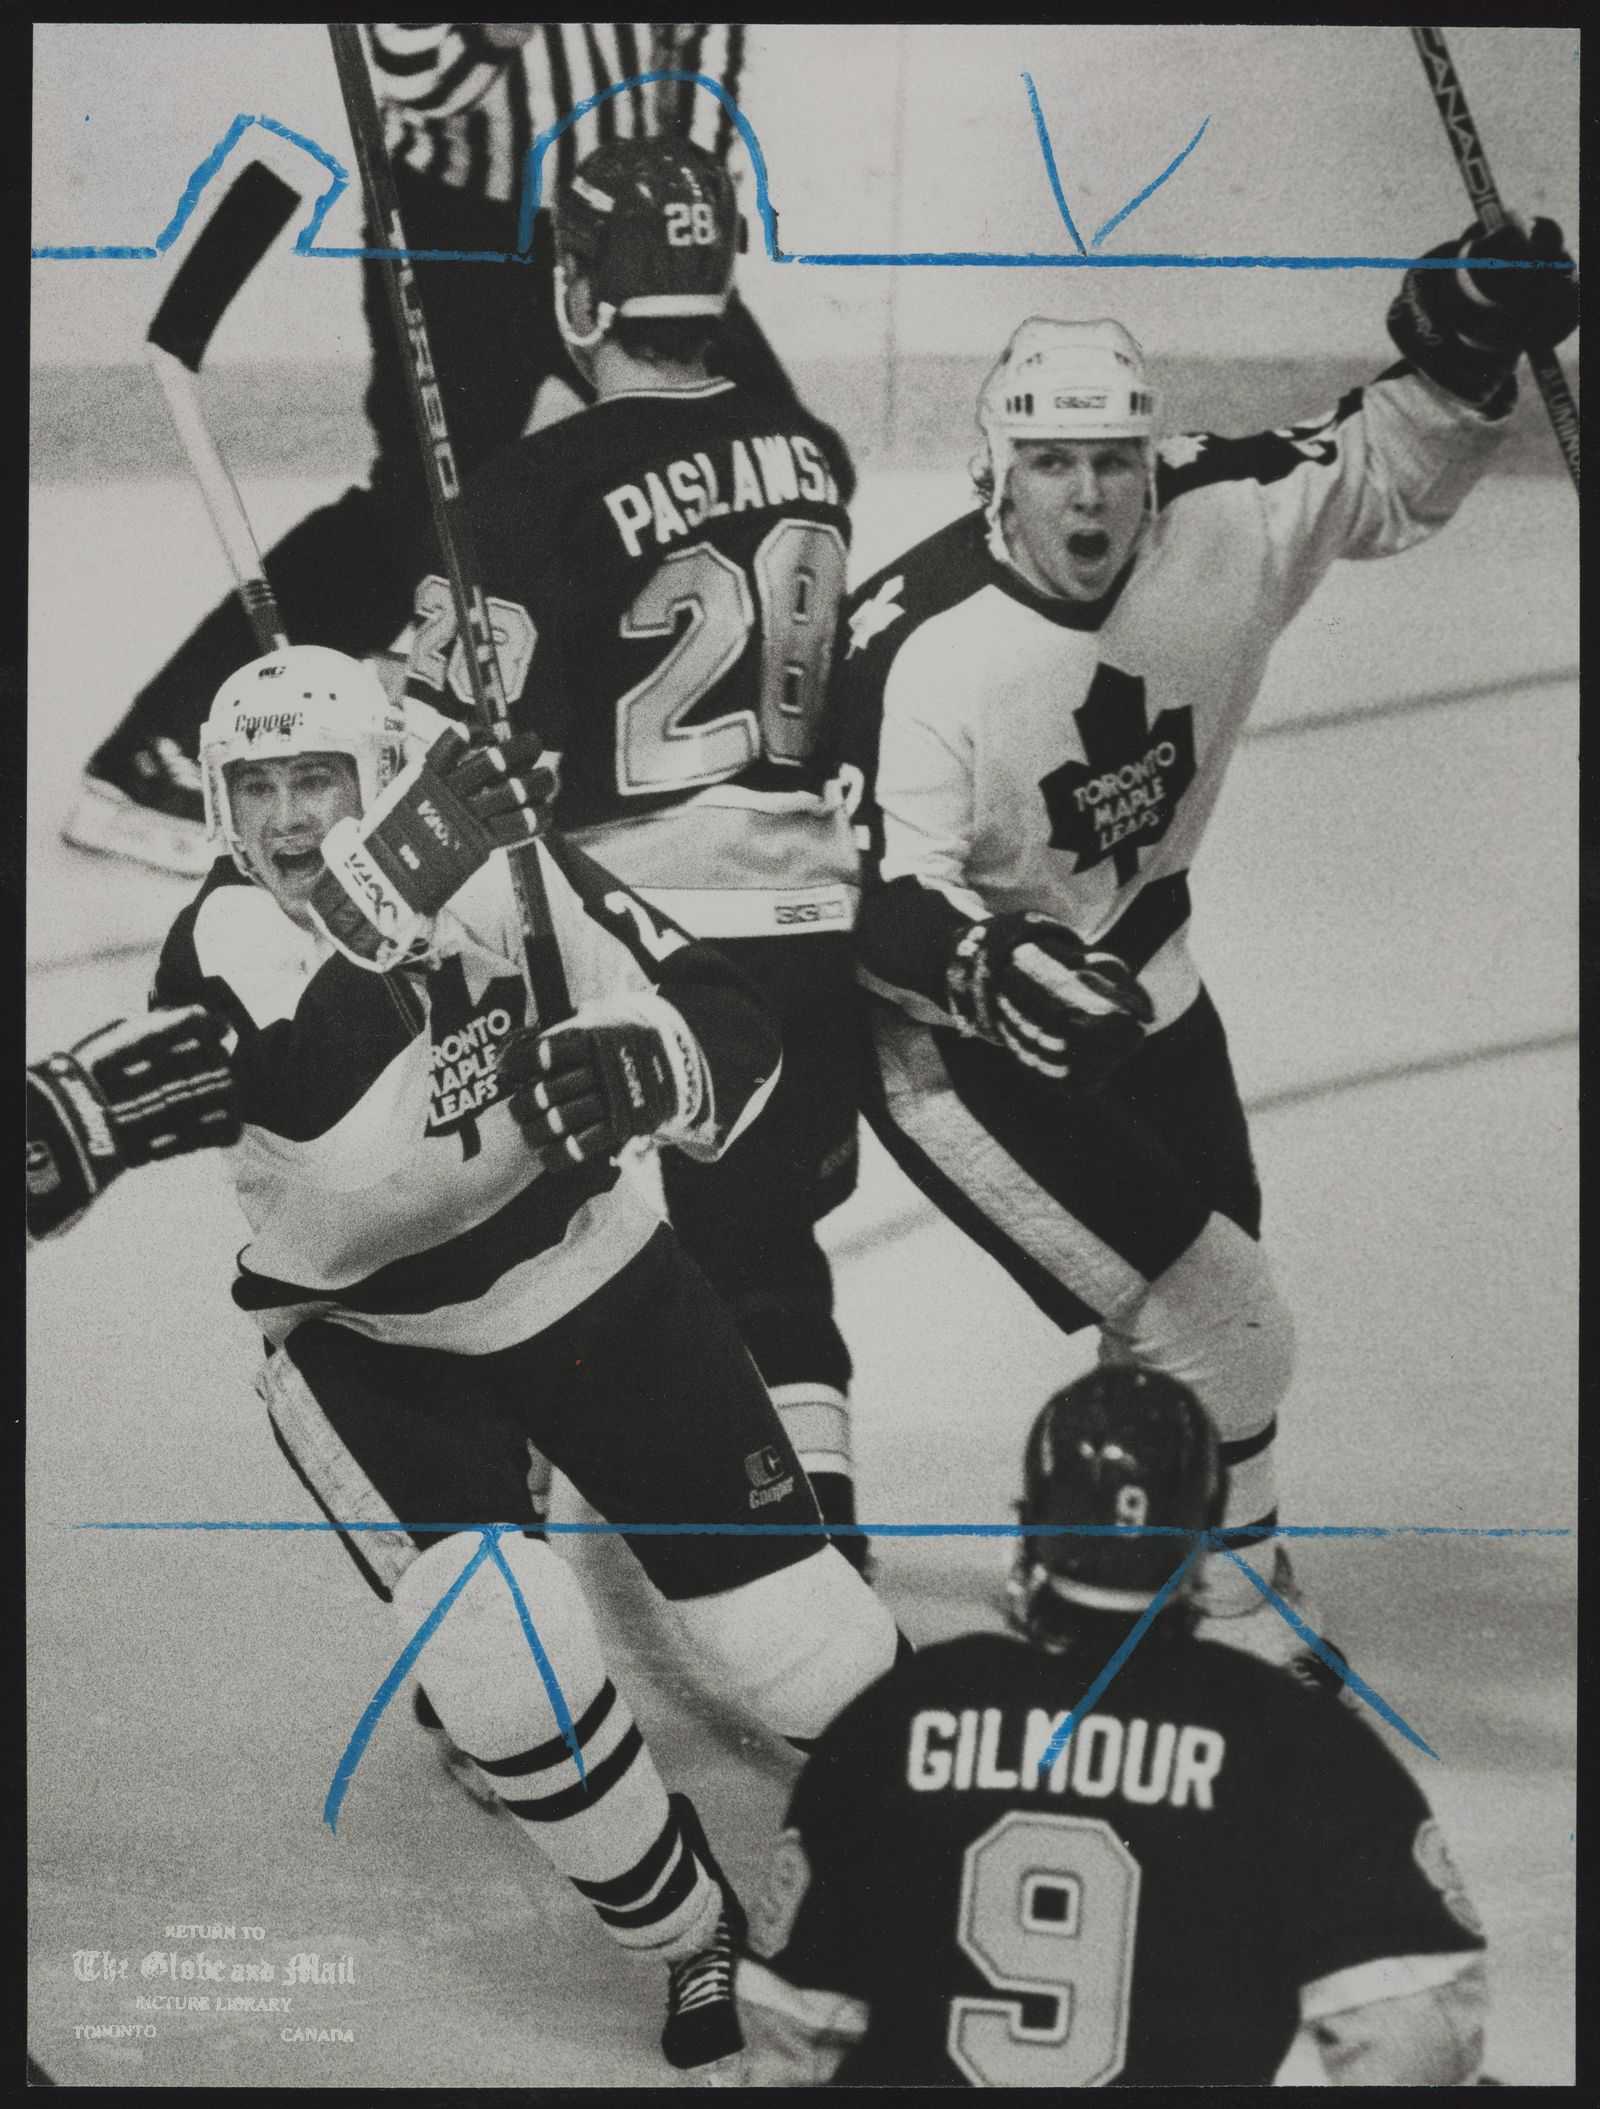 TORONTO MAPLE LEAFS Toronto Maple Leafs Rick Vaive, left, and Steve Thomas celebrate goal by linemate Tom Fergus that tied last night's game with St. Louis Blues at 2-2. Leafs went on to 5-2 victory, taking a 2-1 lead in Stanley Cup playoff series.